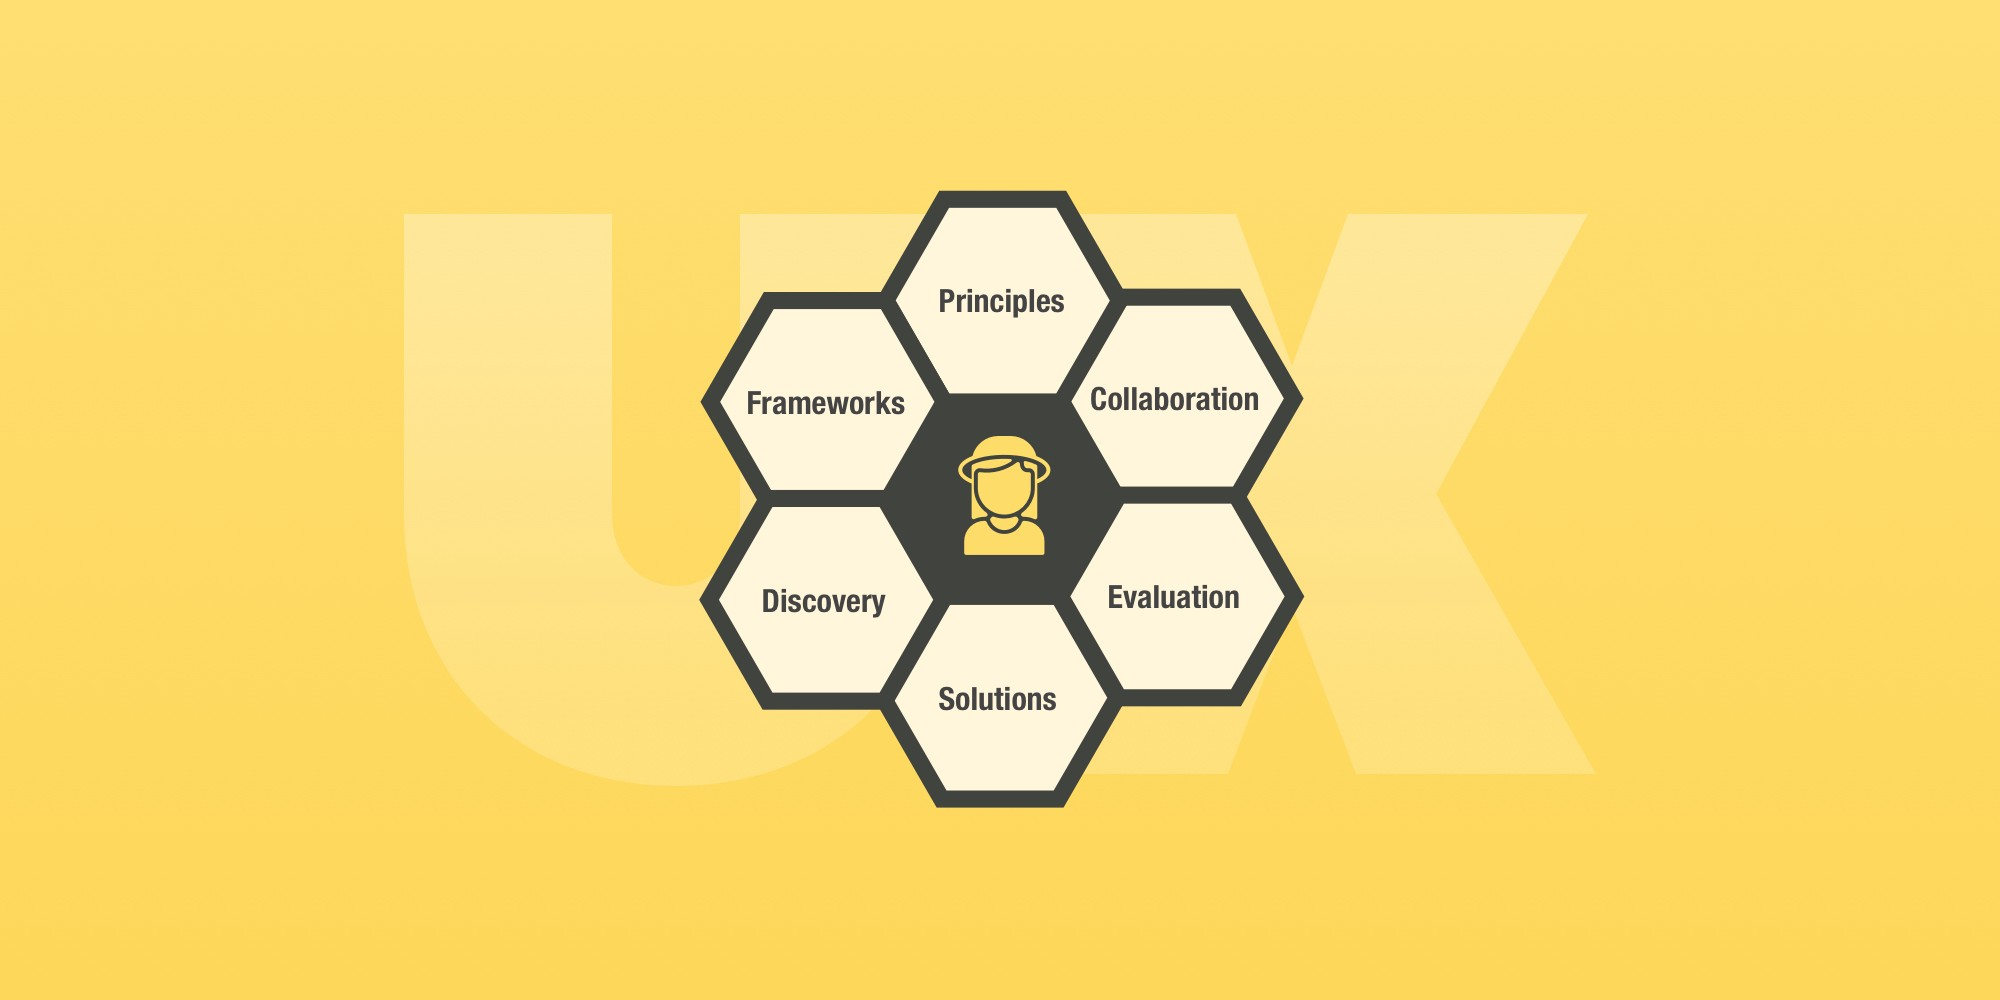 An illustration of a honeycomb structure reflecting the different building blocks for a UX practice.